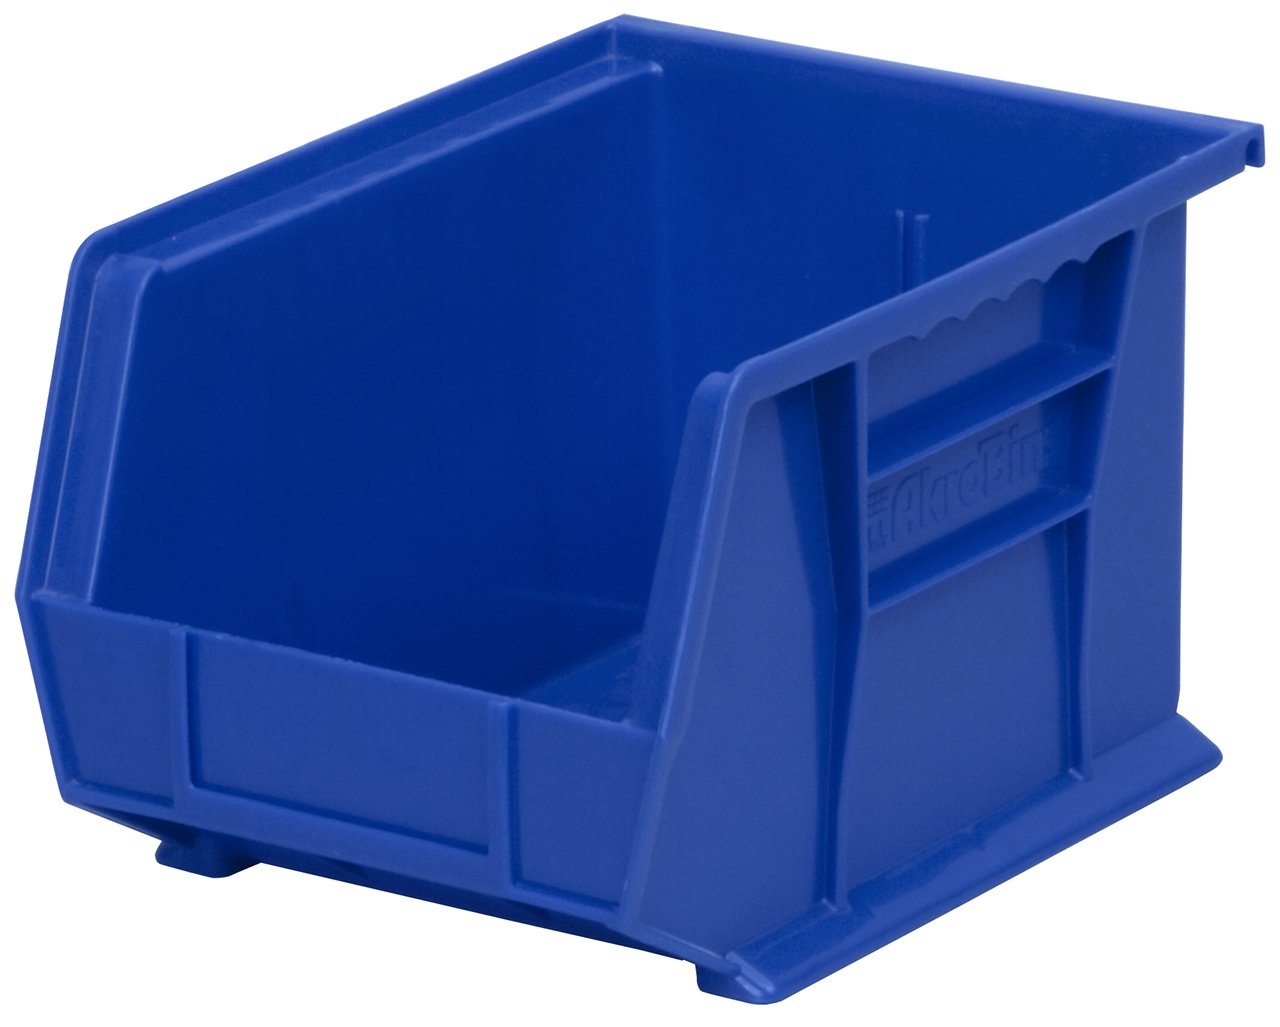 Akro-Mils 30239 Plastic Storage Stacking Hanging Akro Bin, 11-Inch by 8-Inch by 7-Inch, Blue, Case of 6